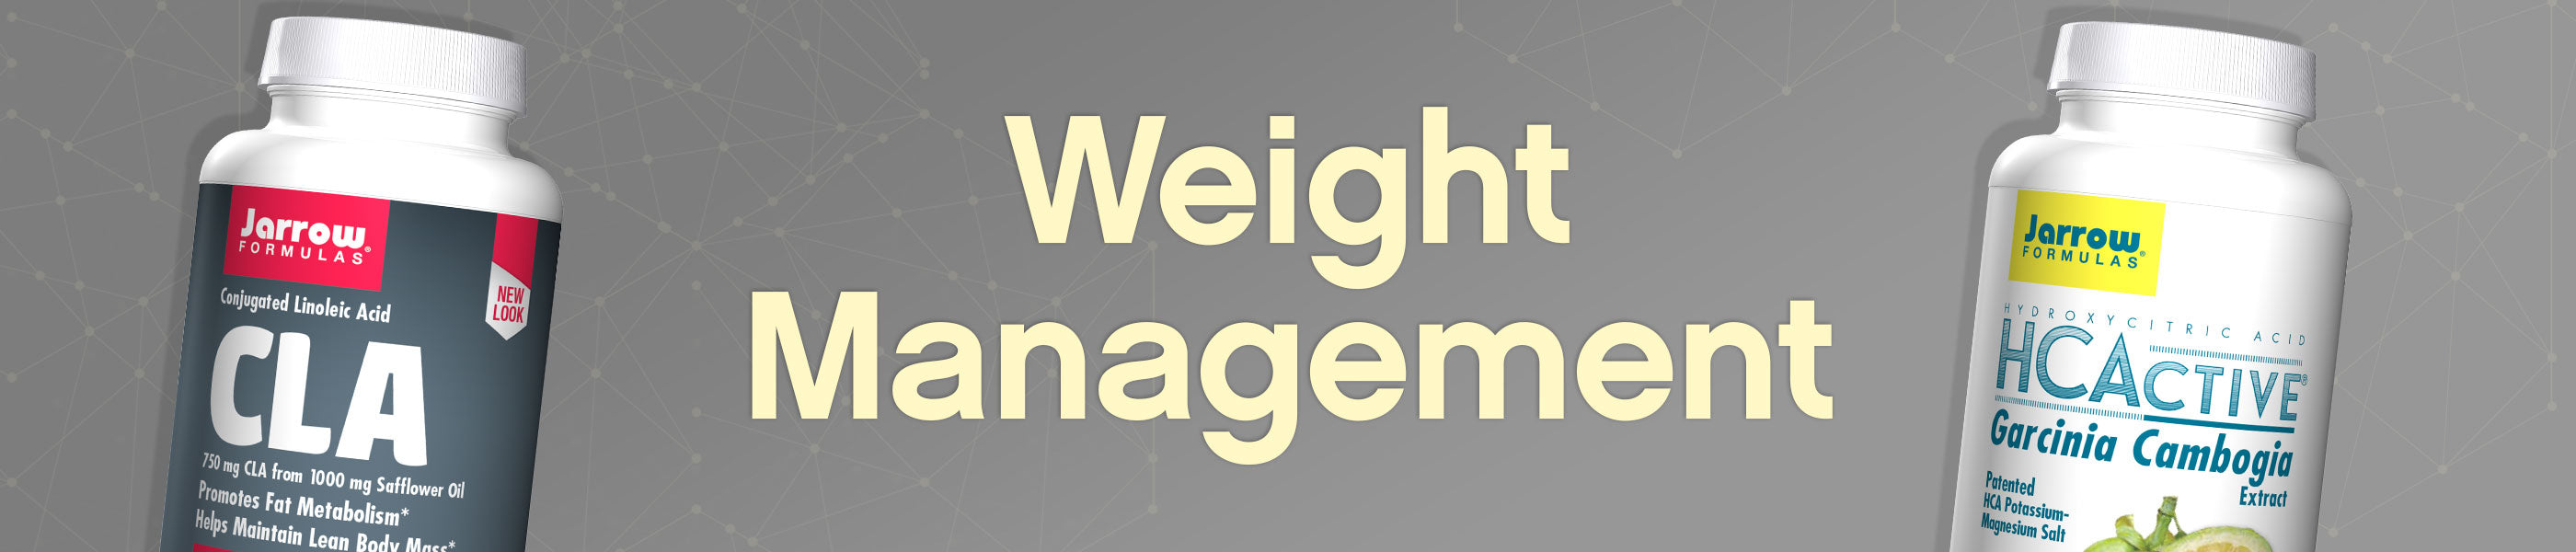 Weight Management header image